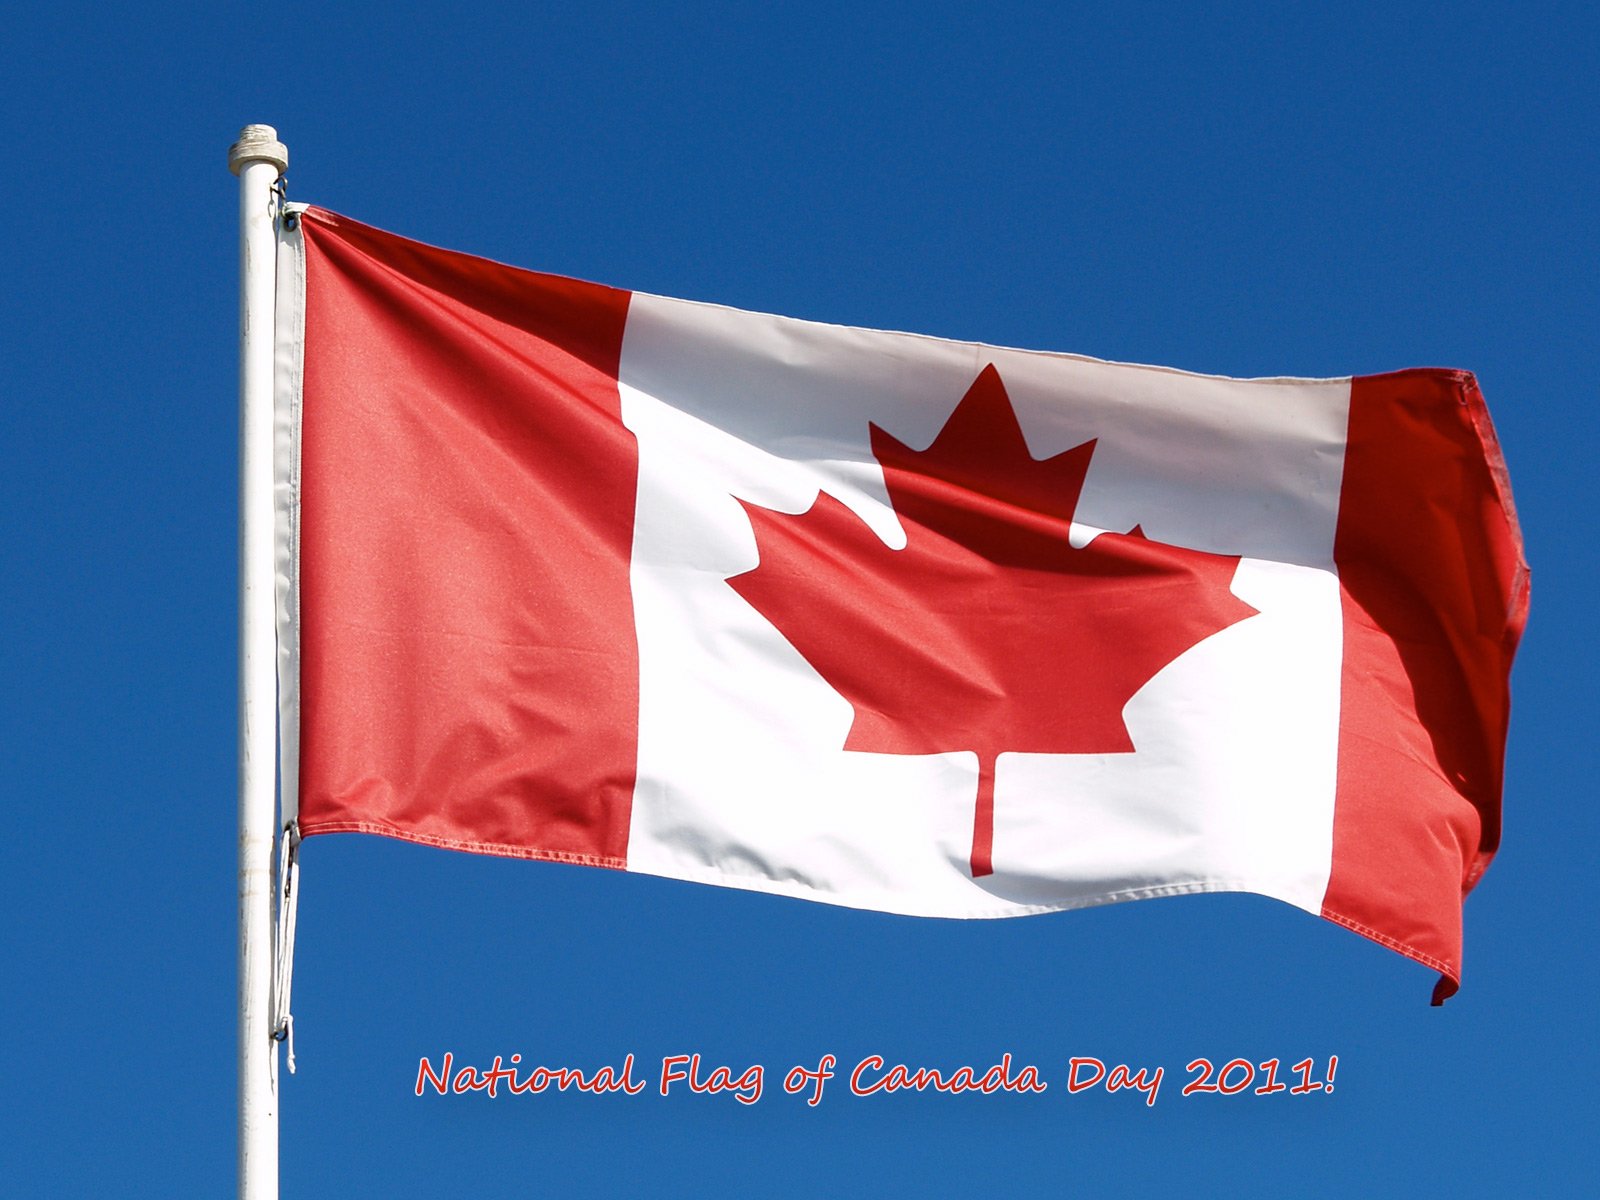 National Flag Of Canada Day 2011 computer desktop wallpapers 1600x1200